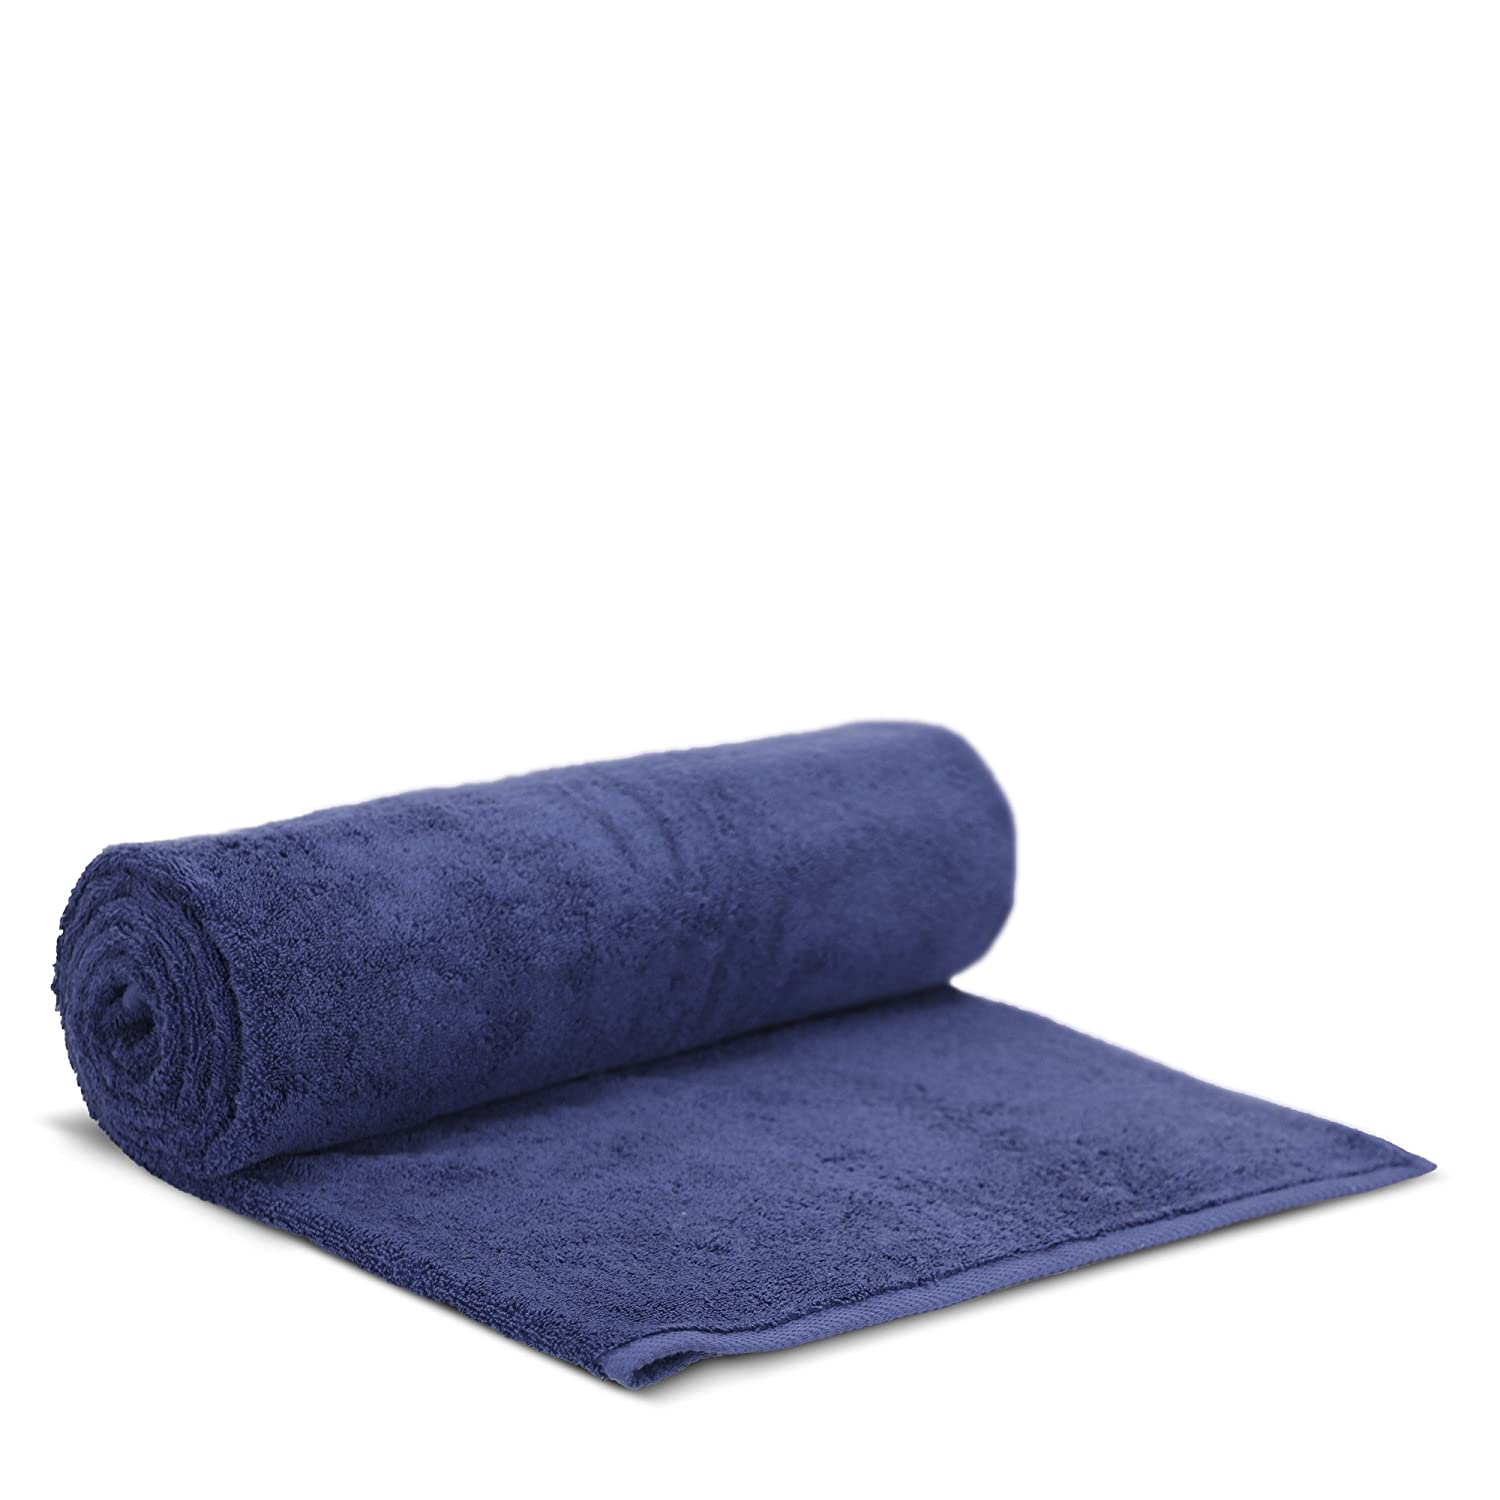 Towel Bazaar - Luxury Turkish Bath Towels